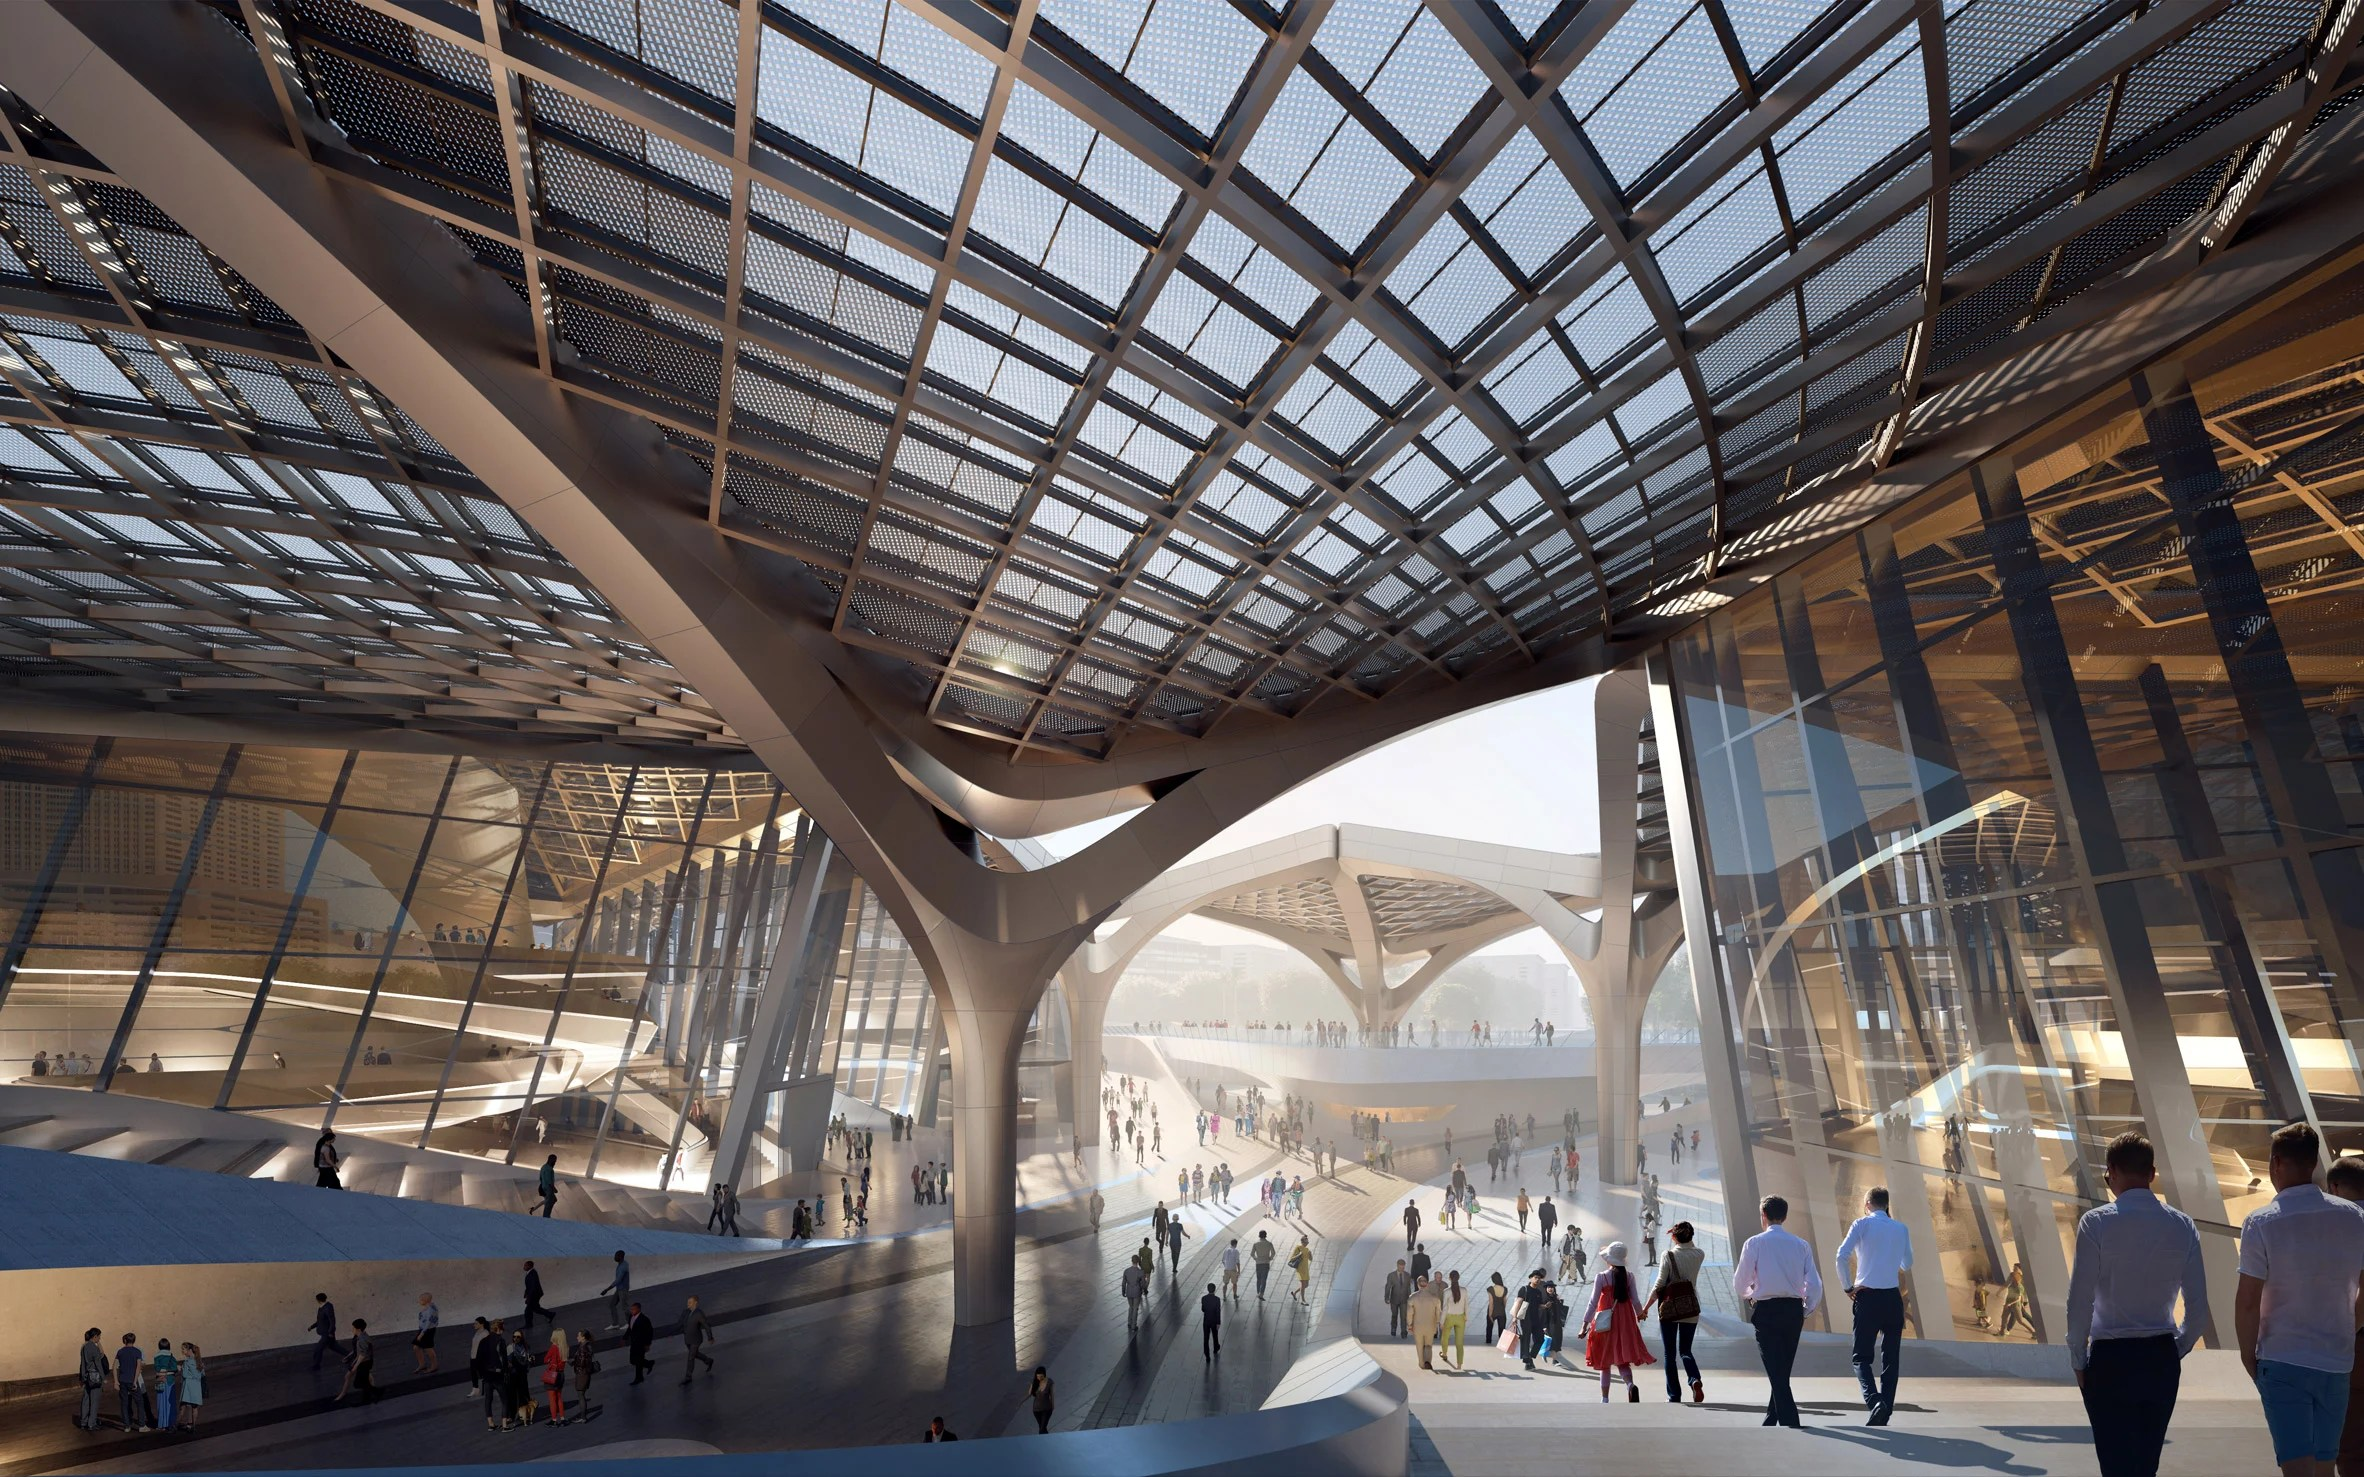 A plaza at the heart of a Chinese cultural centre by Zaha Hadid Architects